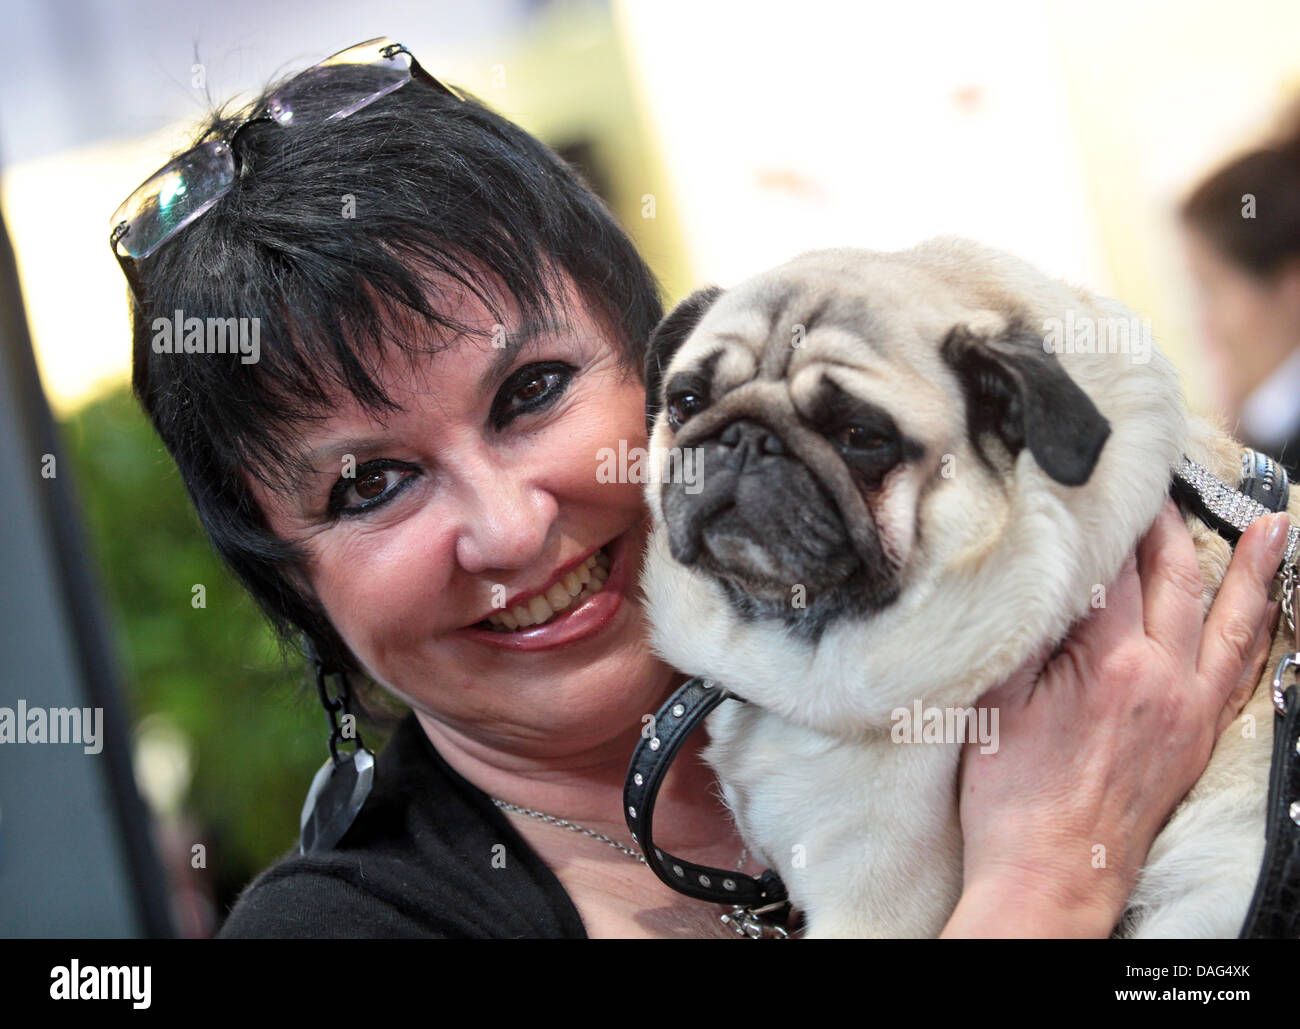 Publicist Uschi Ackermann and her pug 'Sir Henry' pose for a picture during the presentation of Ackermann's - Stock Image